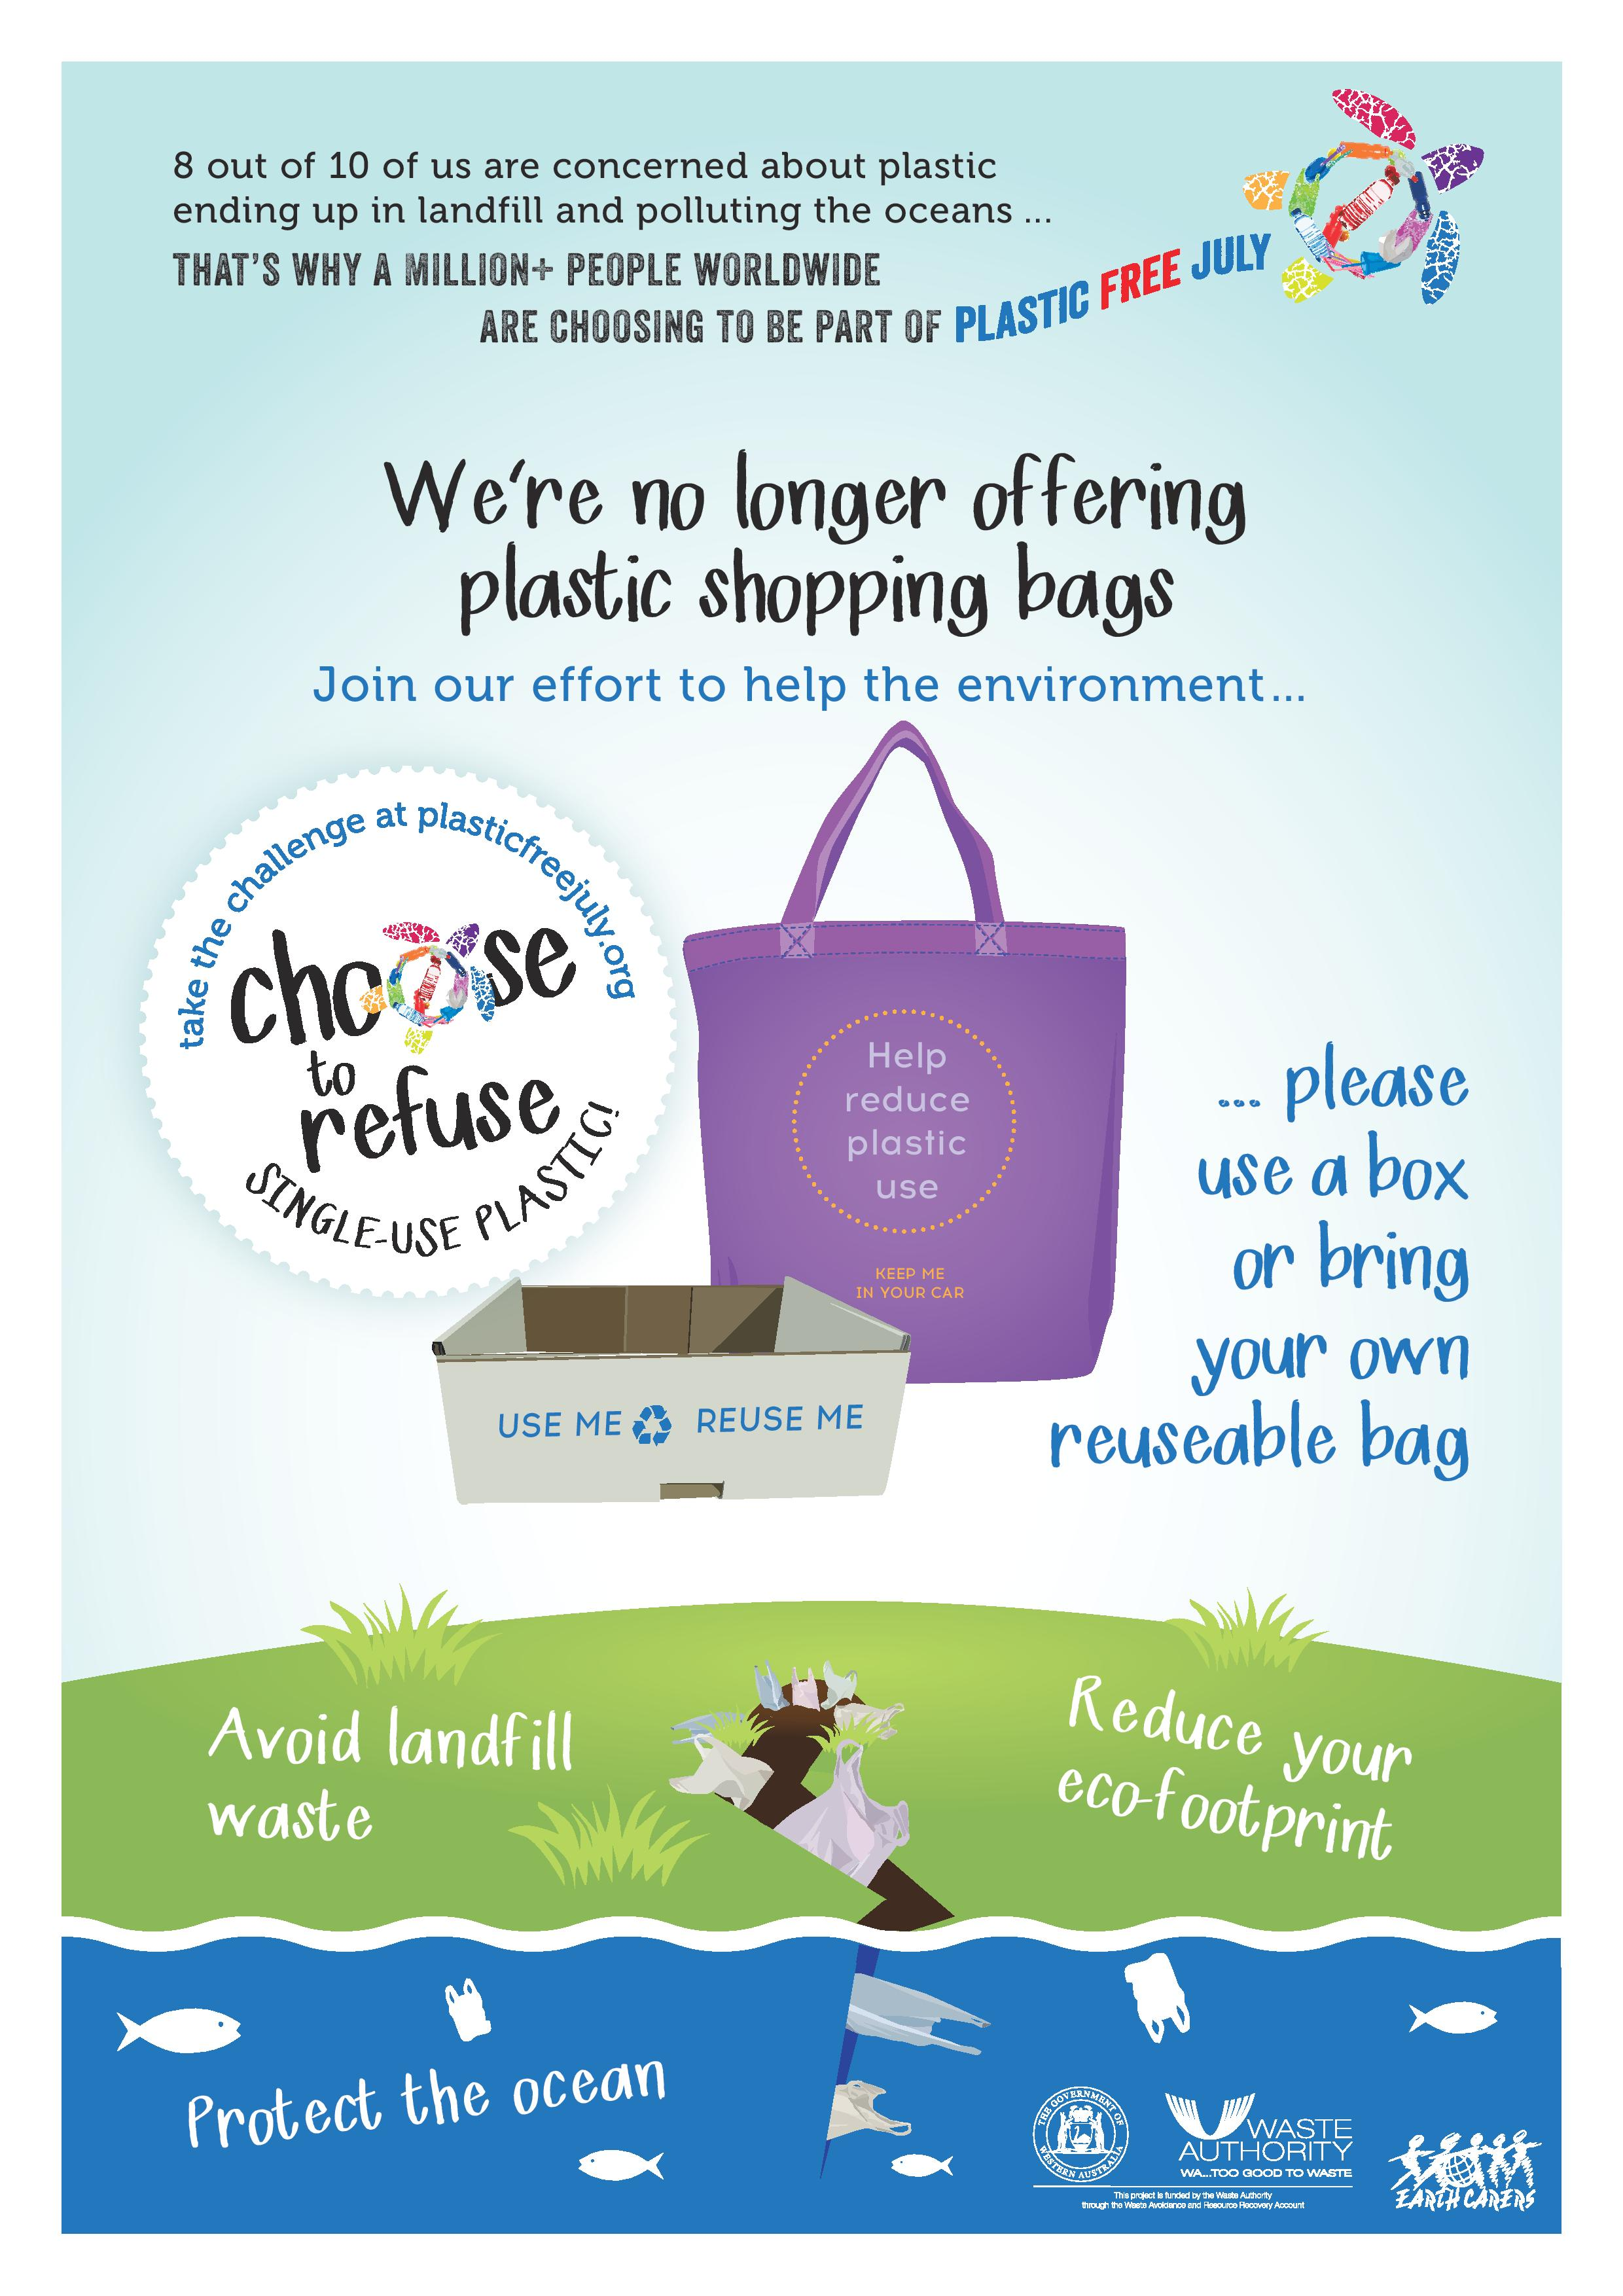 Plastic Free July tool kit poster bags+boxes no plastic worldwide-page-001.jpg